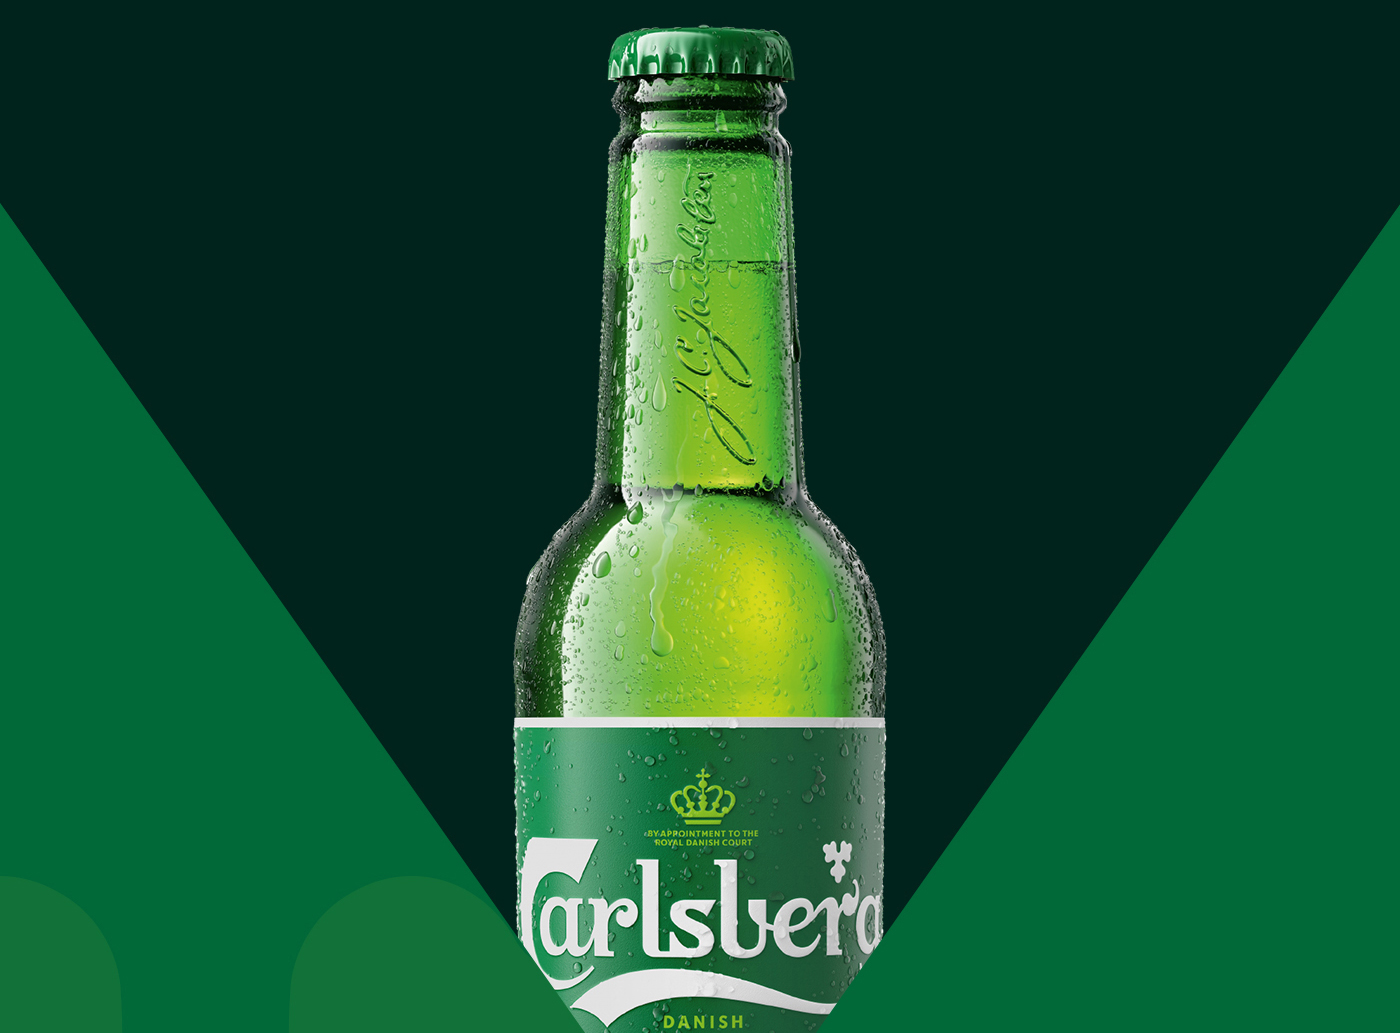 Carlsberg - Probably the Best Beer Activation image